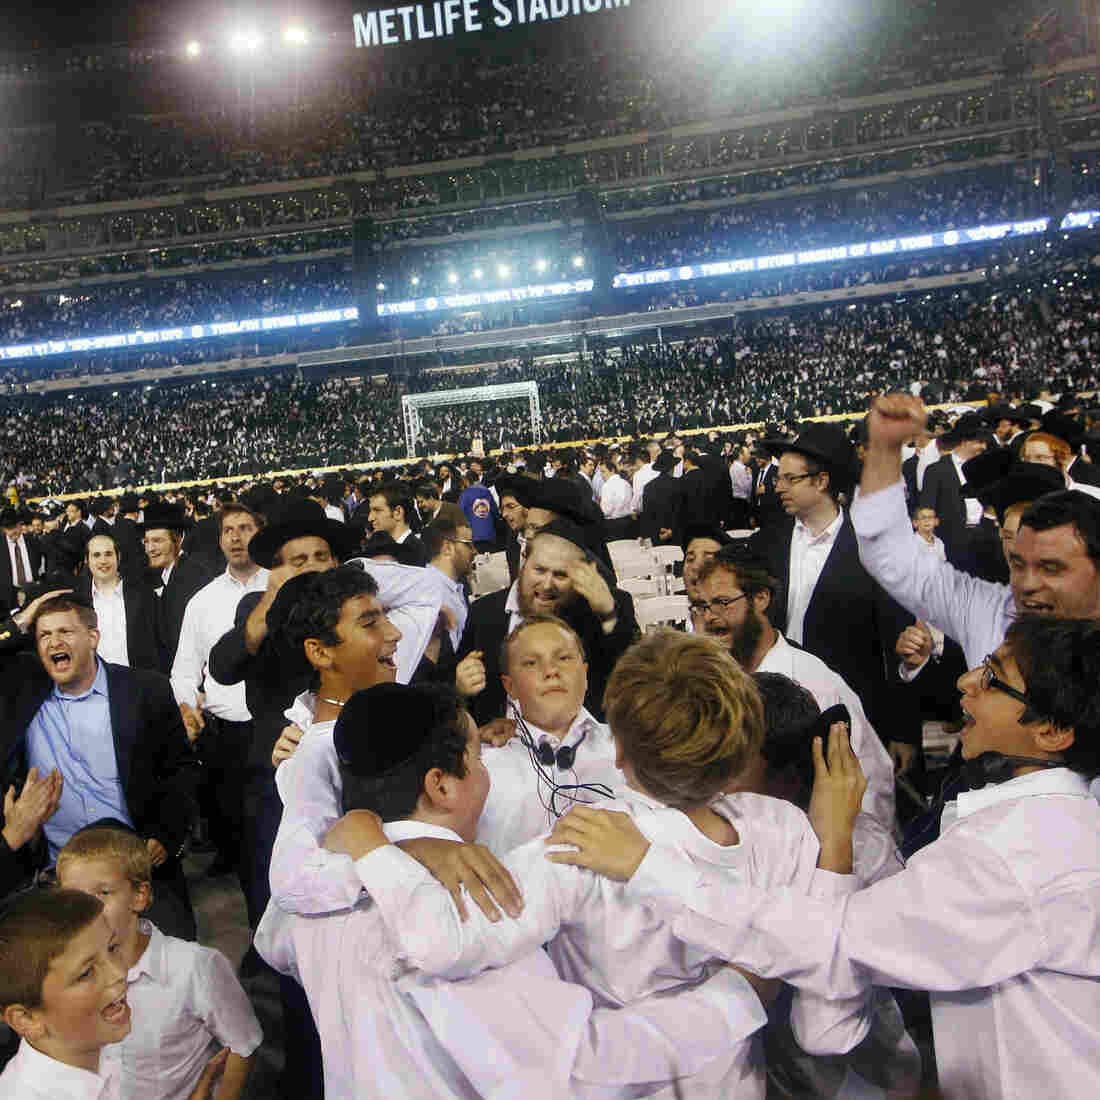 Jewish 'Super Bowl' Praises Years Of Talmudic Study